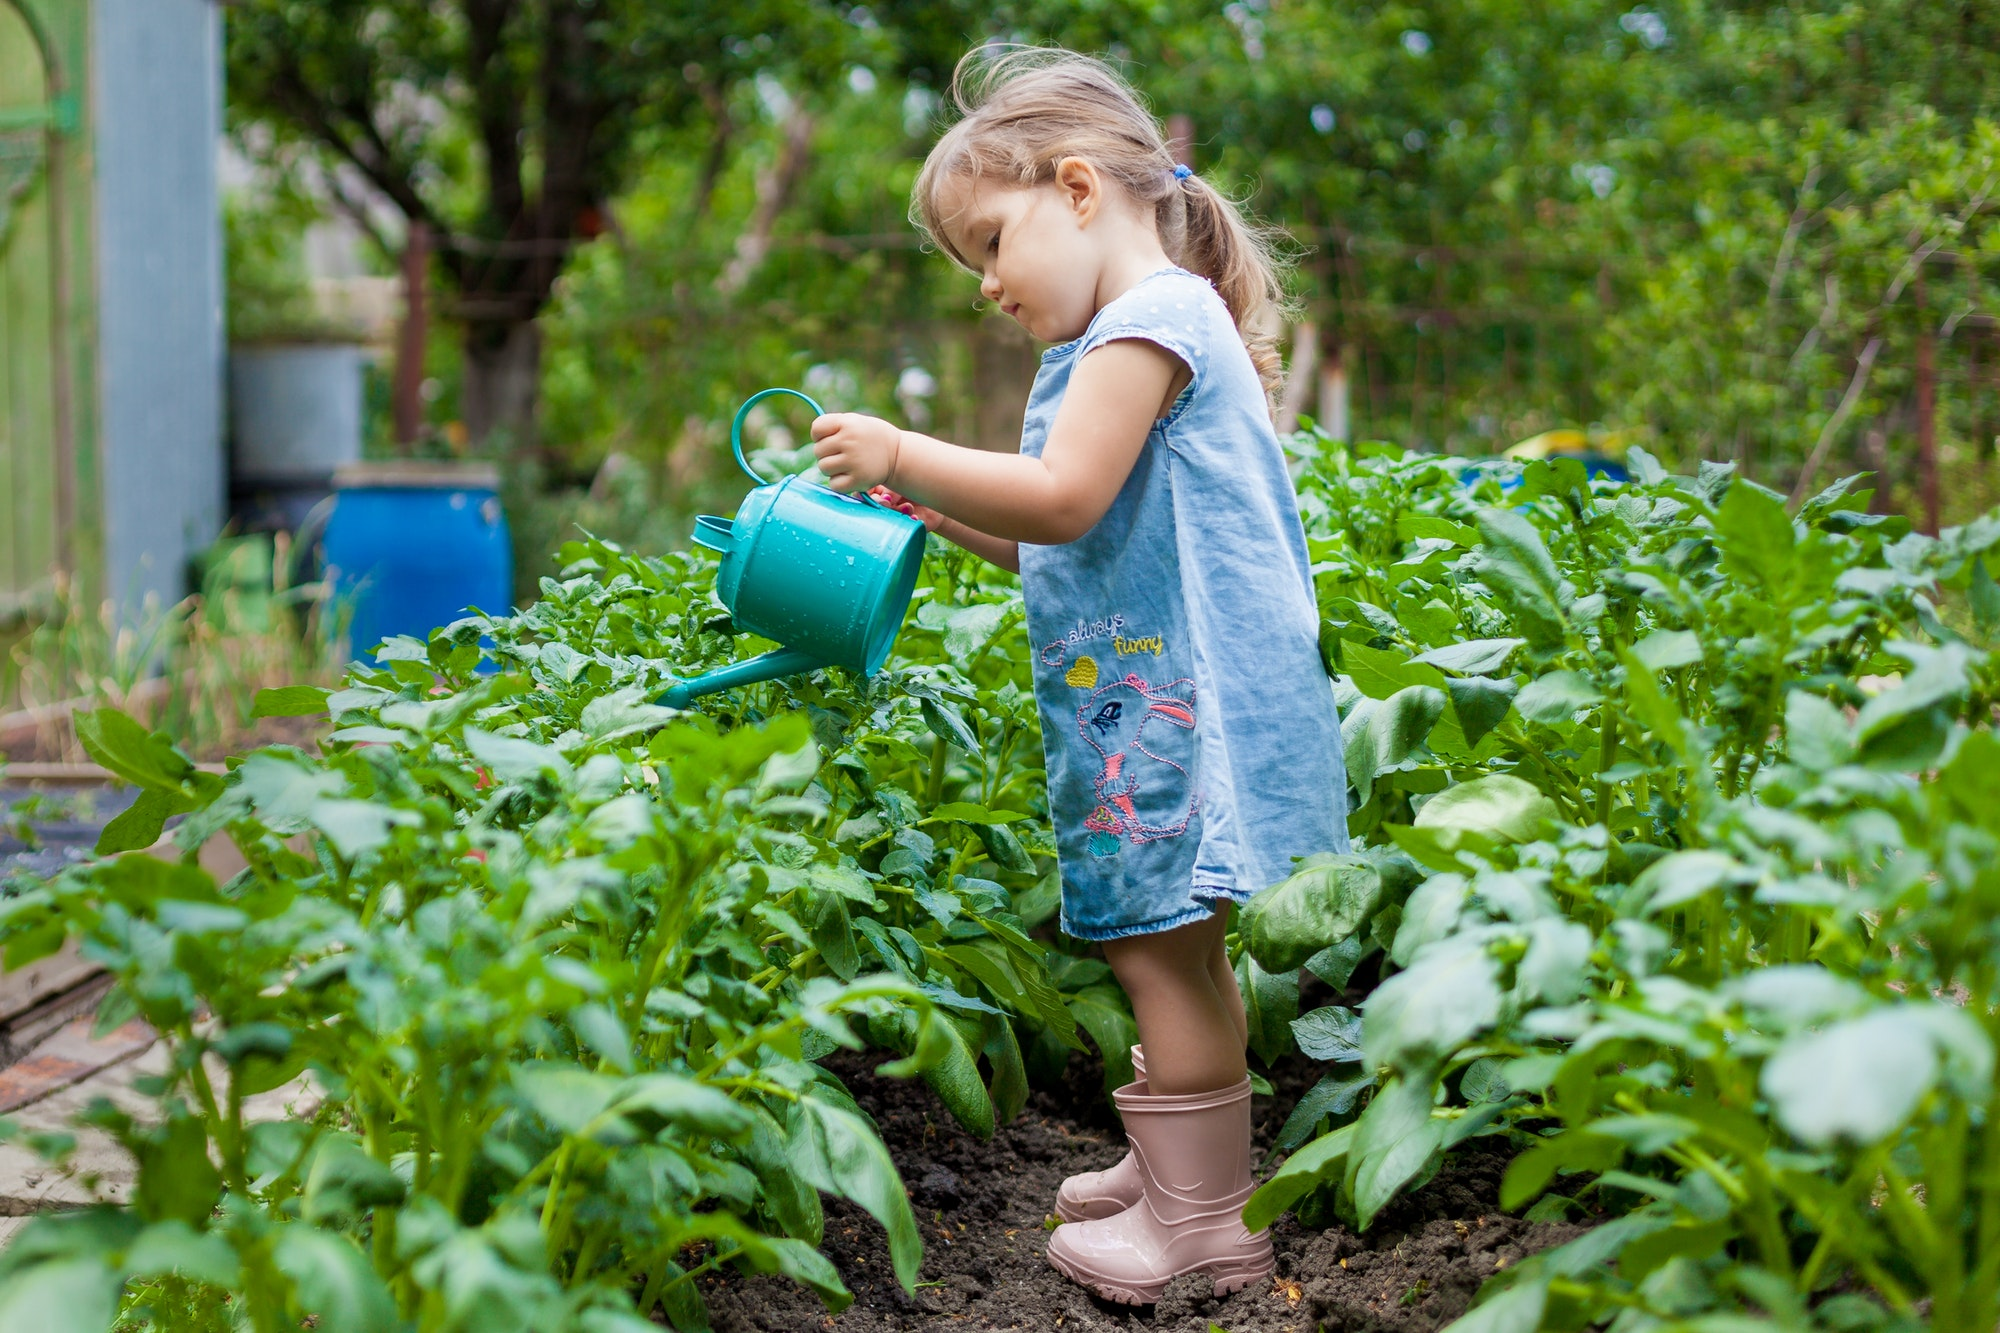 kid, plant, gardening, flower, garden, spring, little, child, nature, young, green, outdoor, care, c